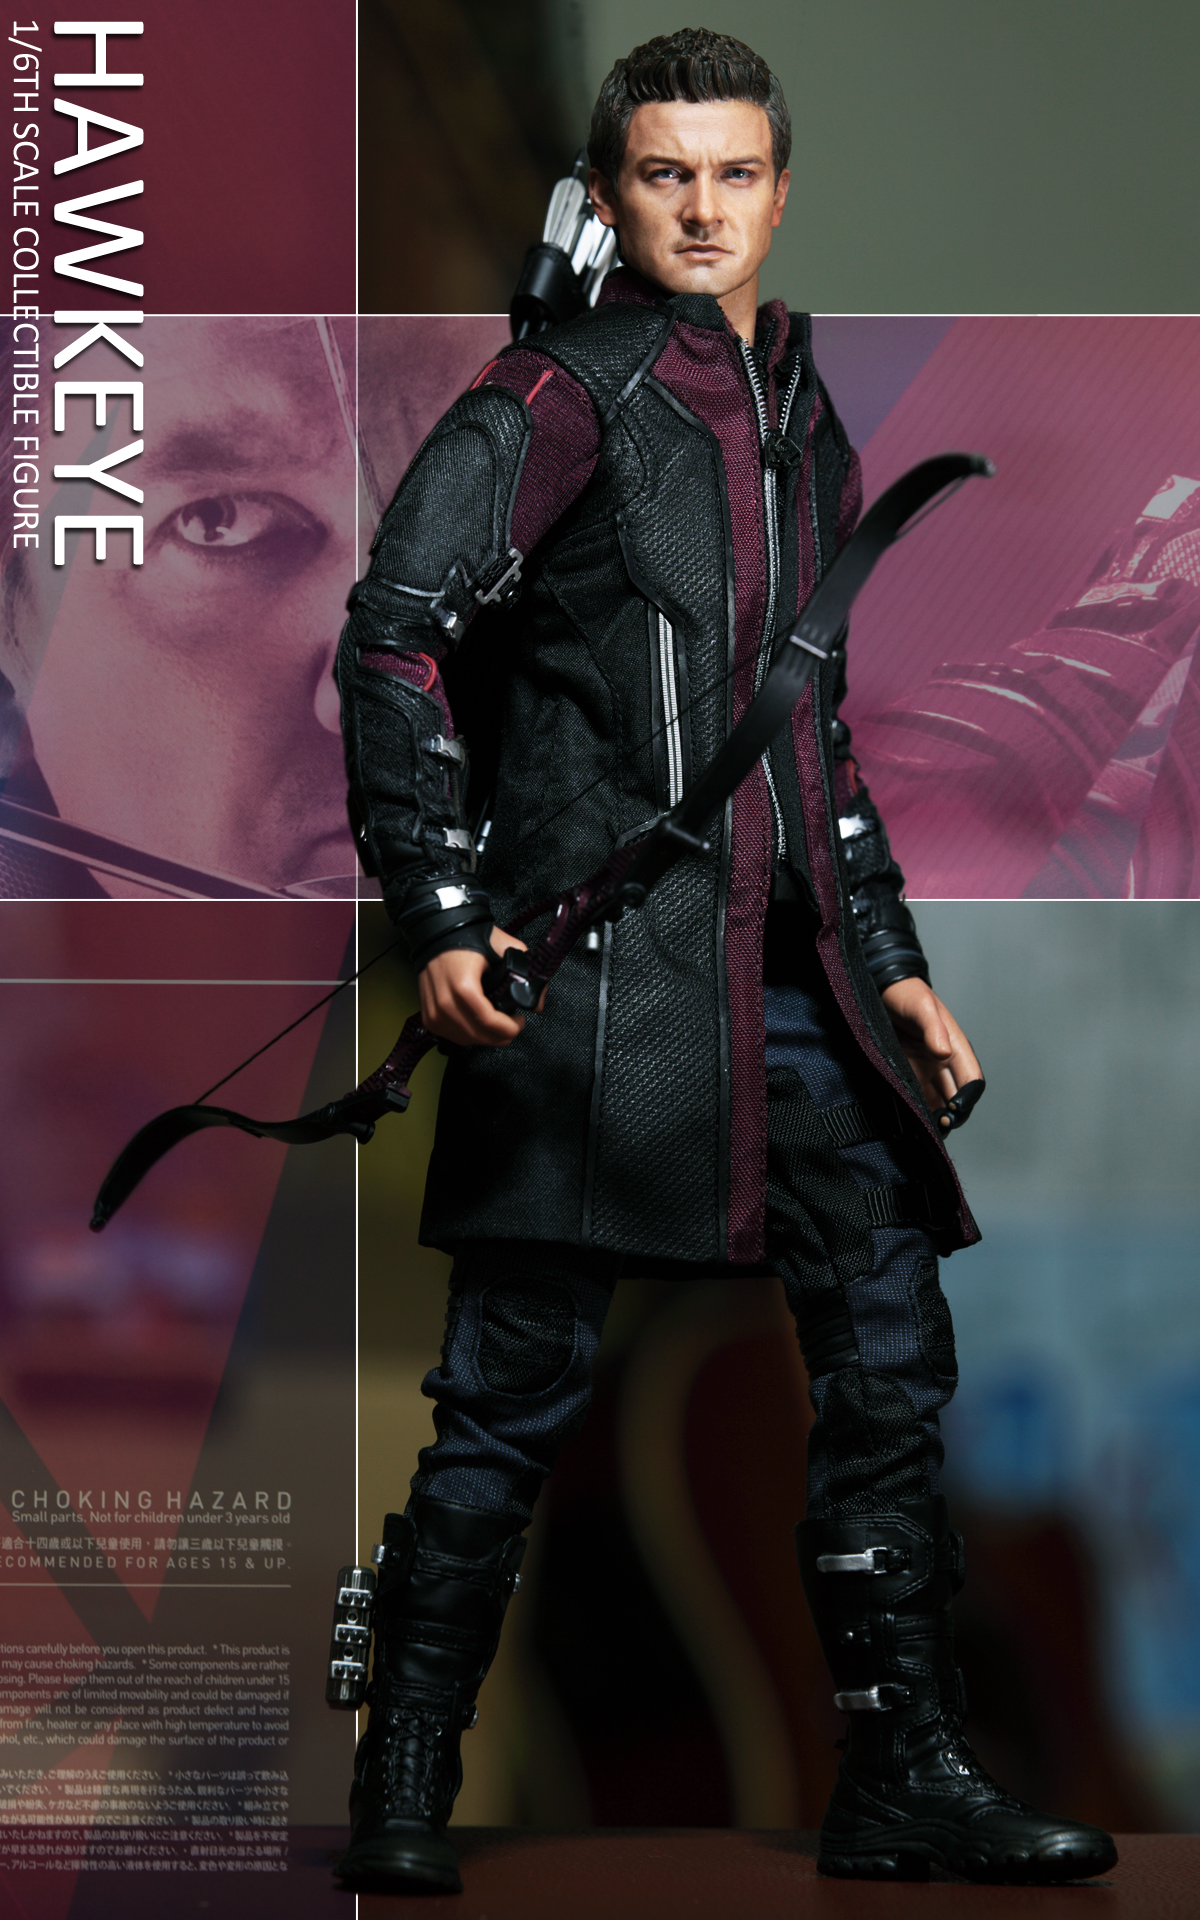 hottoys-avengers-age-of-ultron-hawkeye-picture01